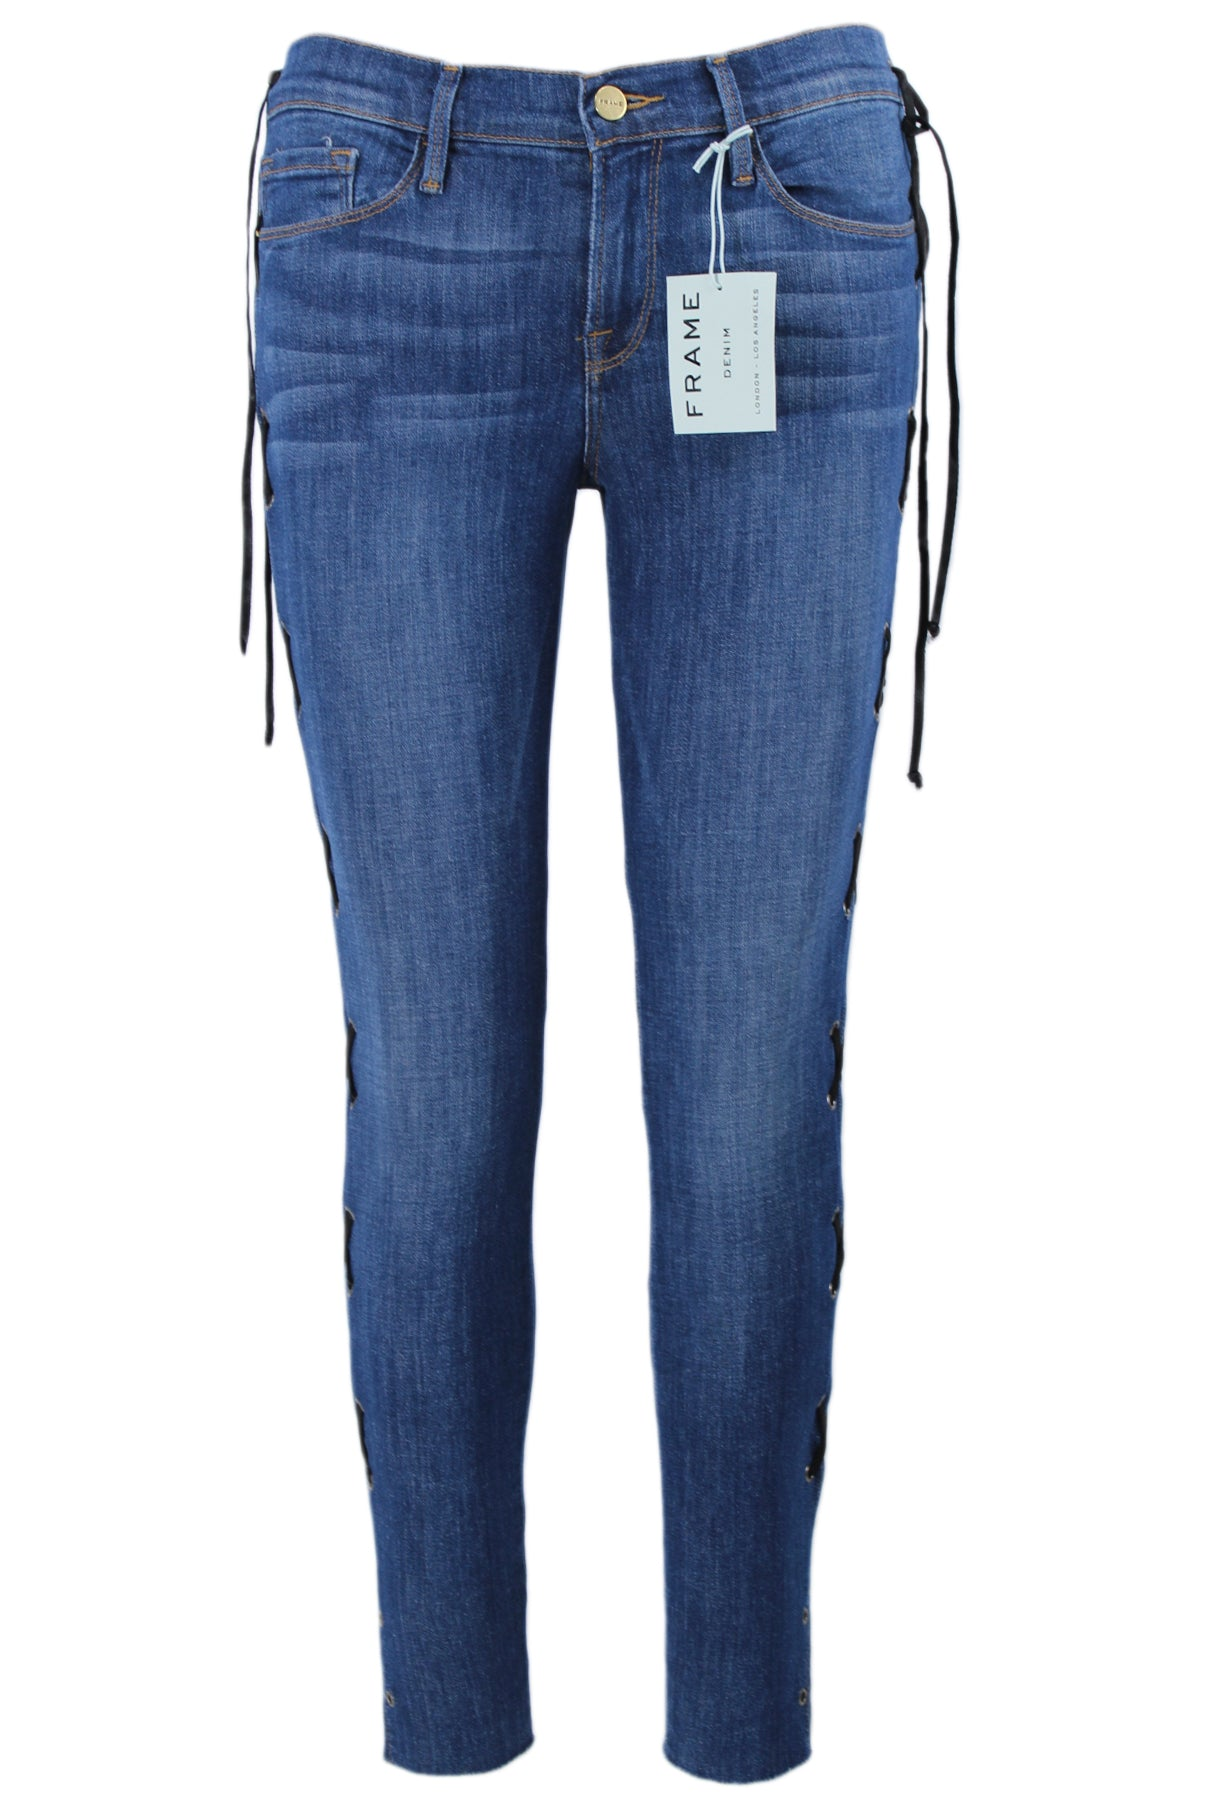 frame indigo high rise skinny jeans. features a concealed zipper & button closure, five external pockets, belt loops, & laced up corset sides. raw bottom hem with small side slits.